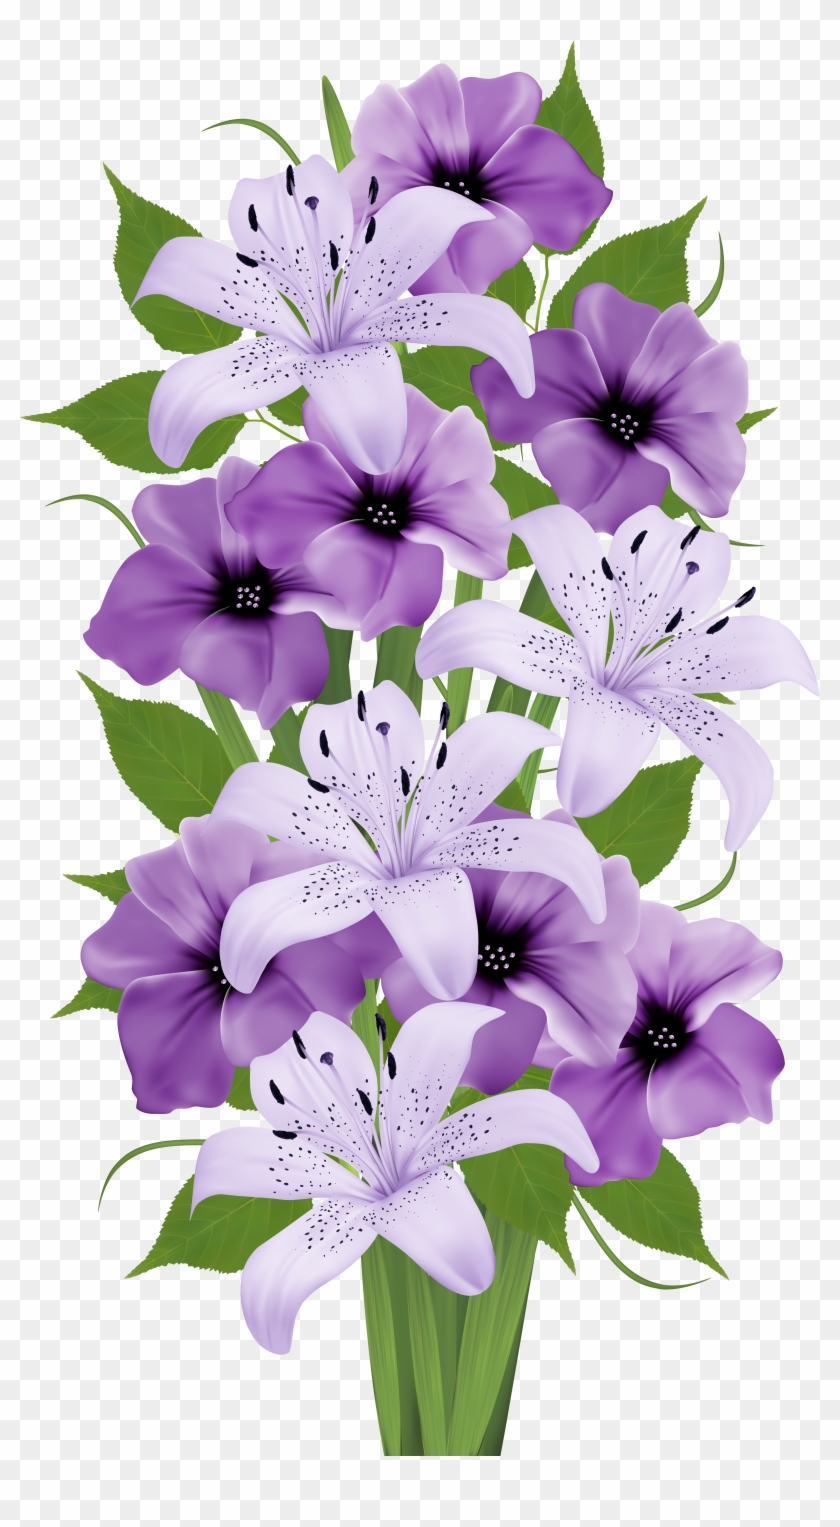 Beautiful Clipart Flower Bouquet Flowers Png Images Hd Free Transparent Png Clipart Images Download,Best Plants To Grow Indoors In Arizona